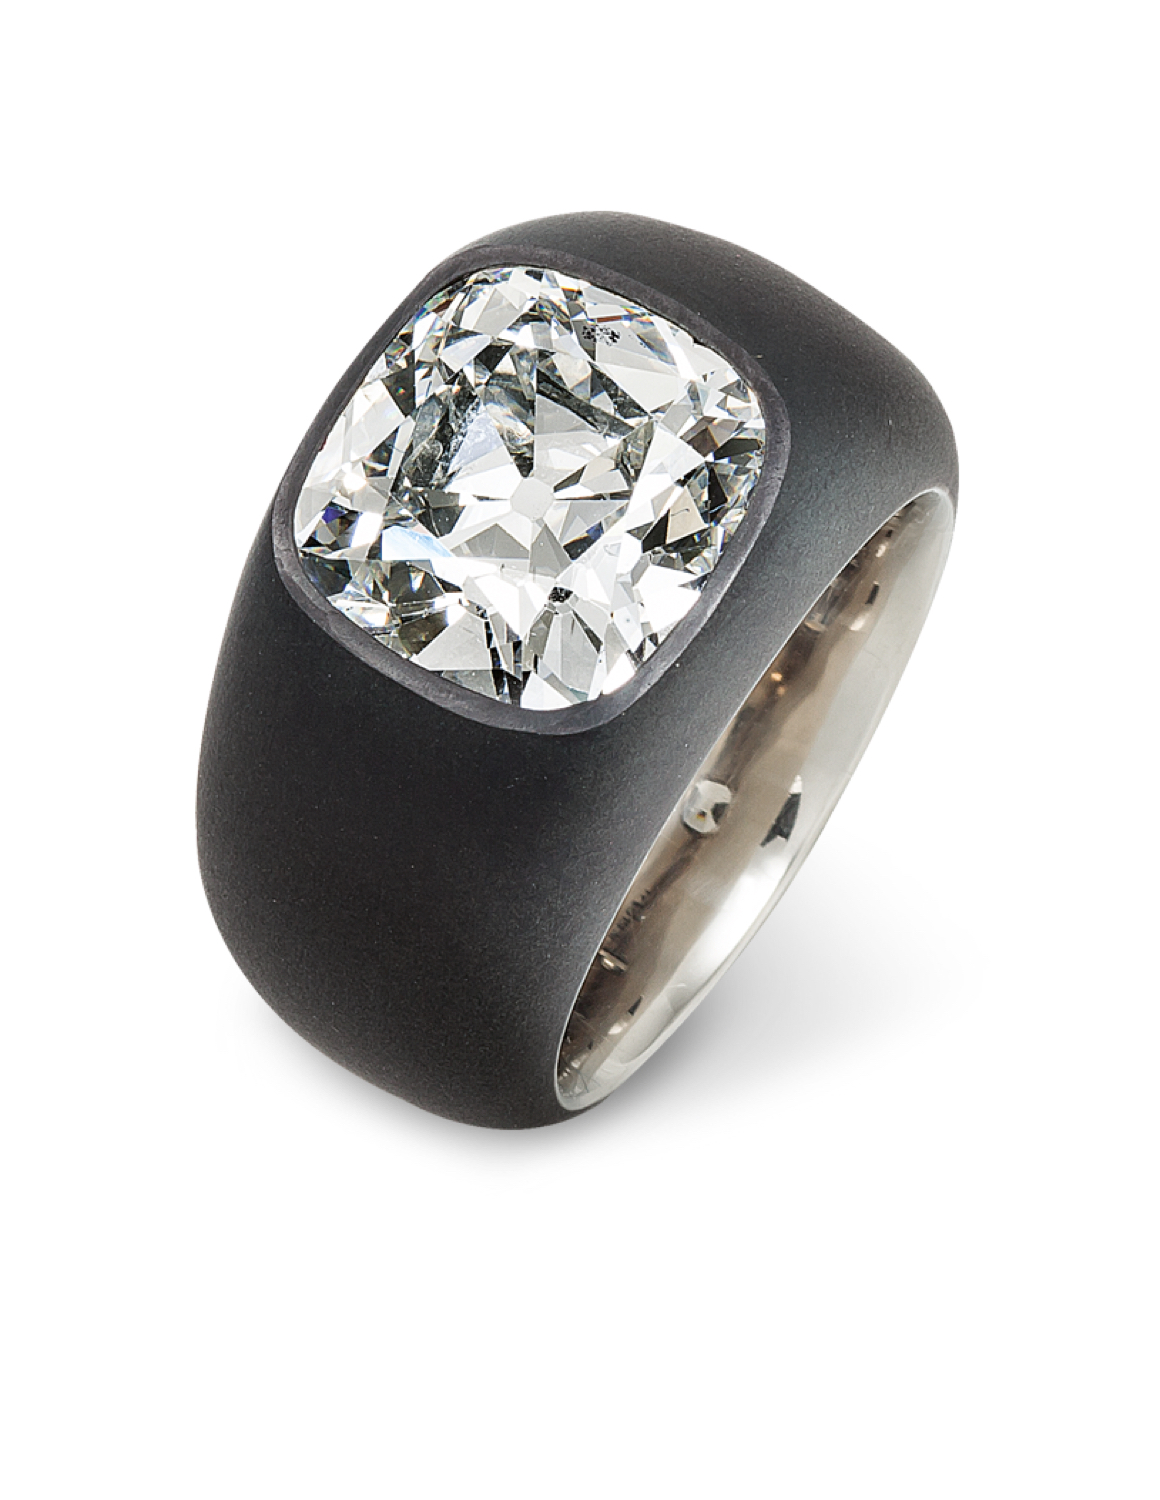 Tiffany's new collection similarities to hemmerle old cut diamond design.